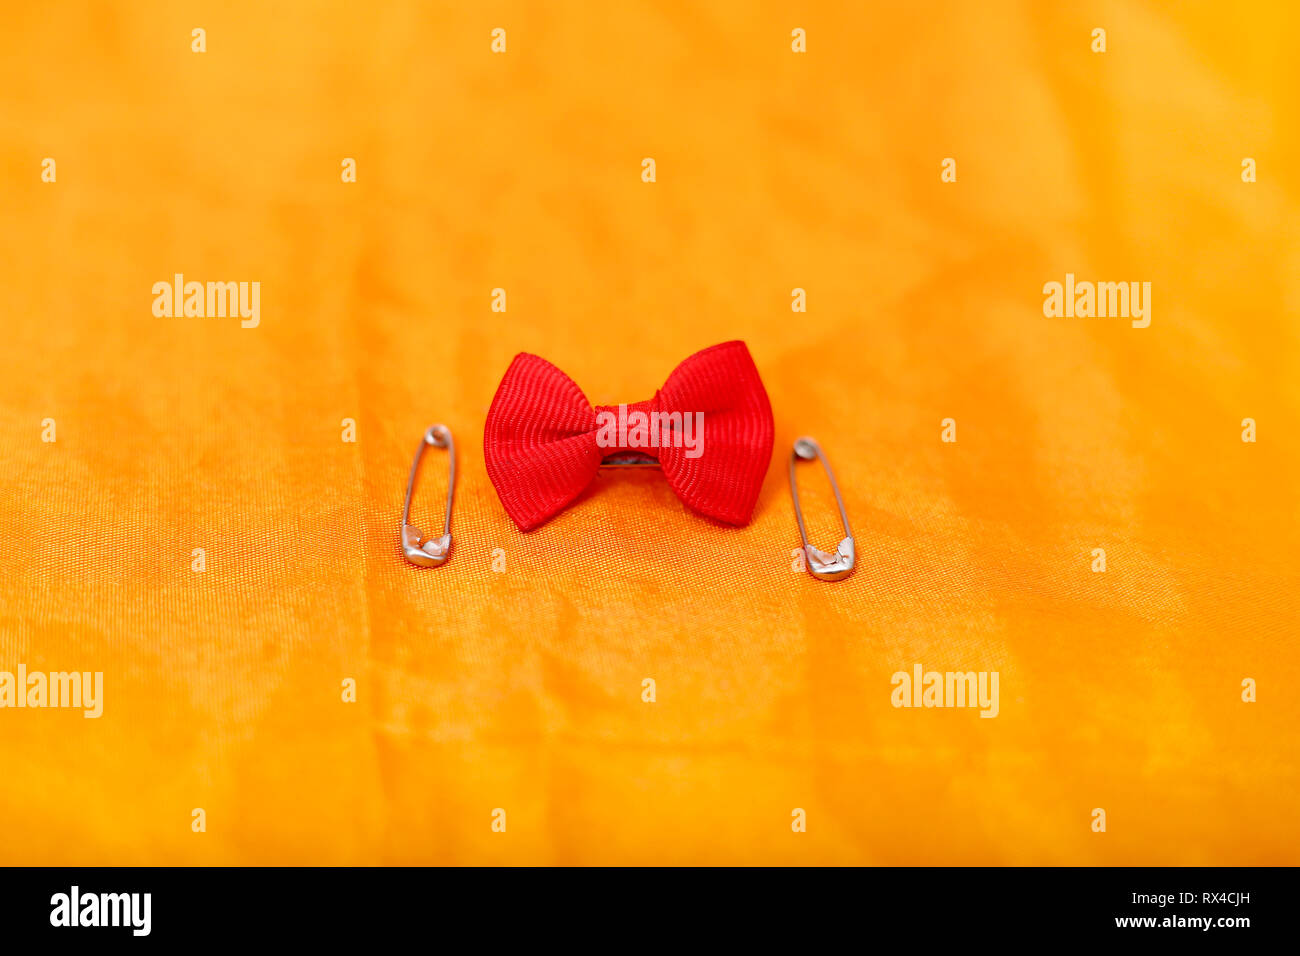 Portrait of safety pin and red bow. Isolated on the yellow background. Stock Photo